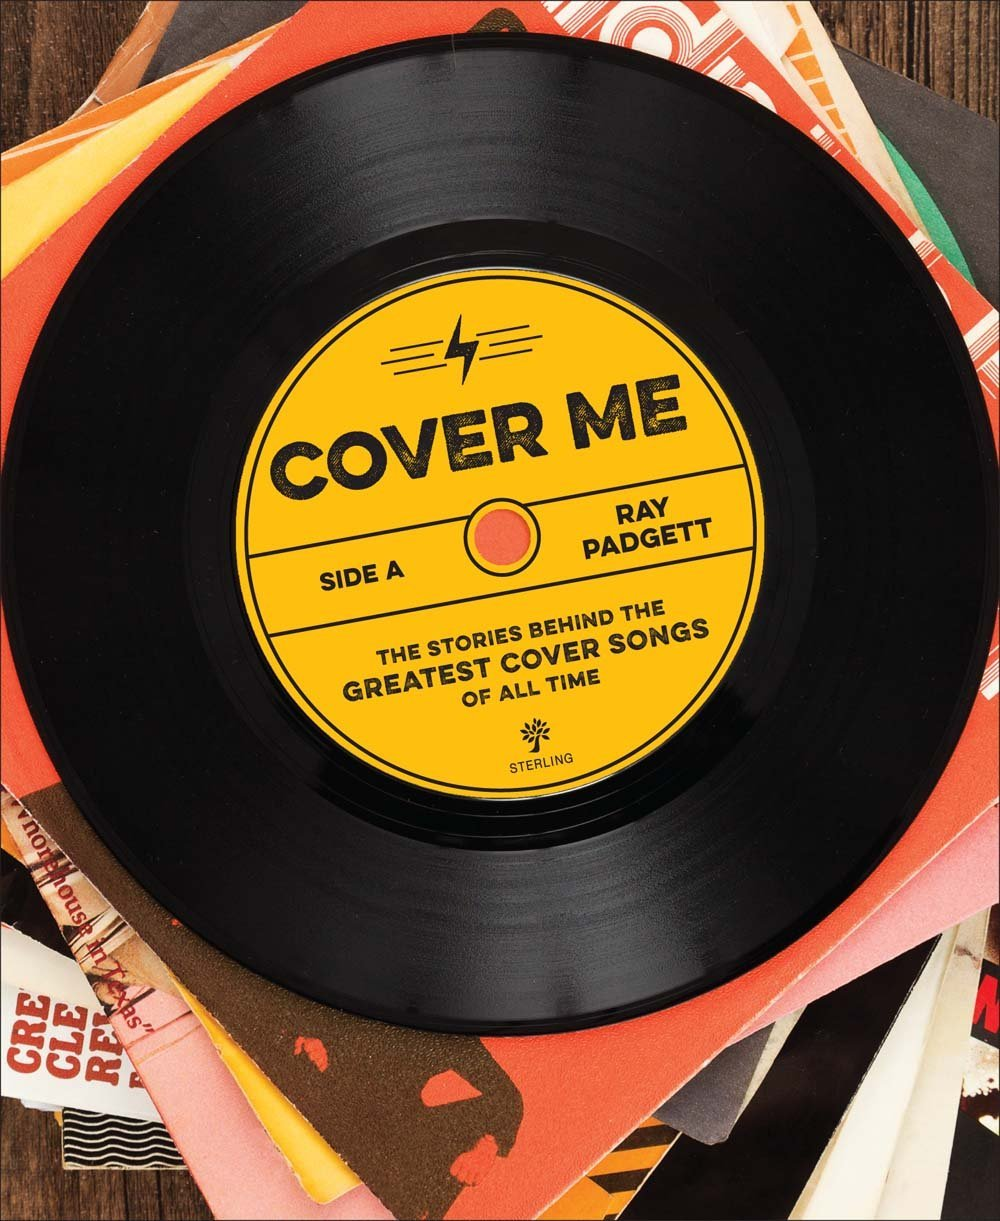 Cover Me The Stories Behind the Greatest Cover Songs of All Time